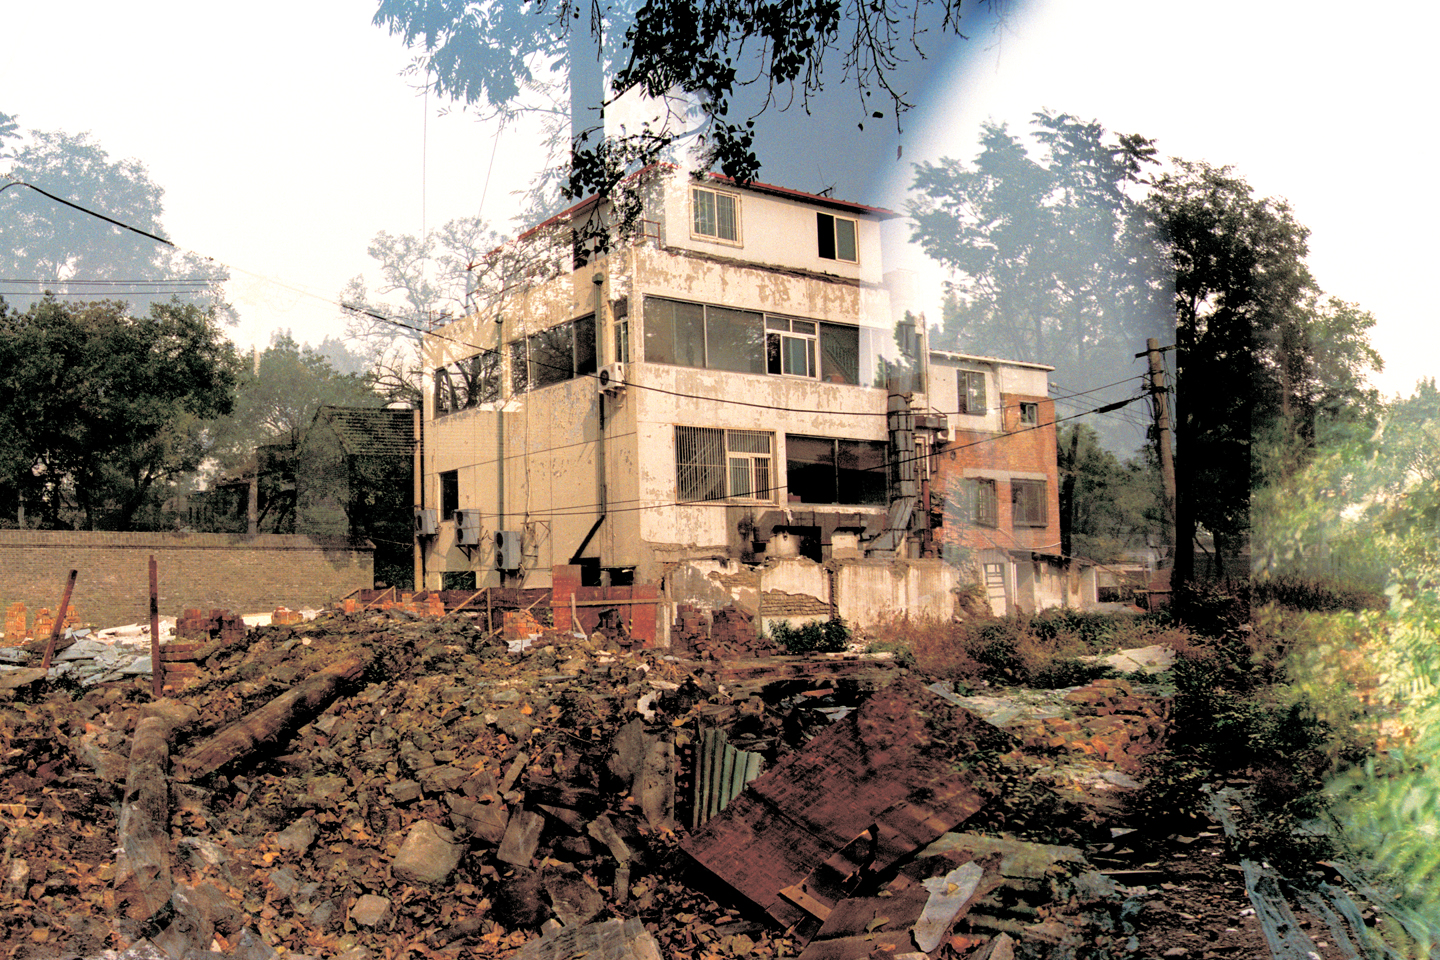 Images of trees and powerlines are translucent over an image of a giant tan house stands next to a pile of rubble.